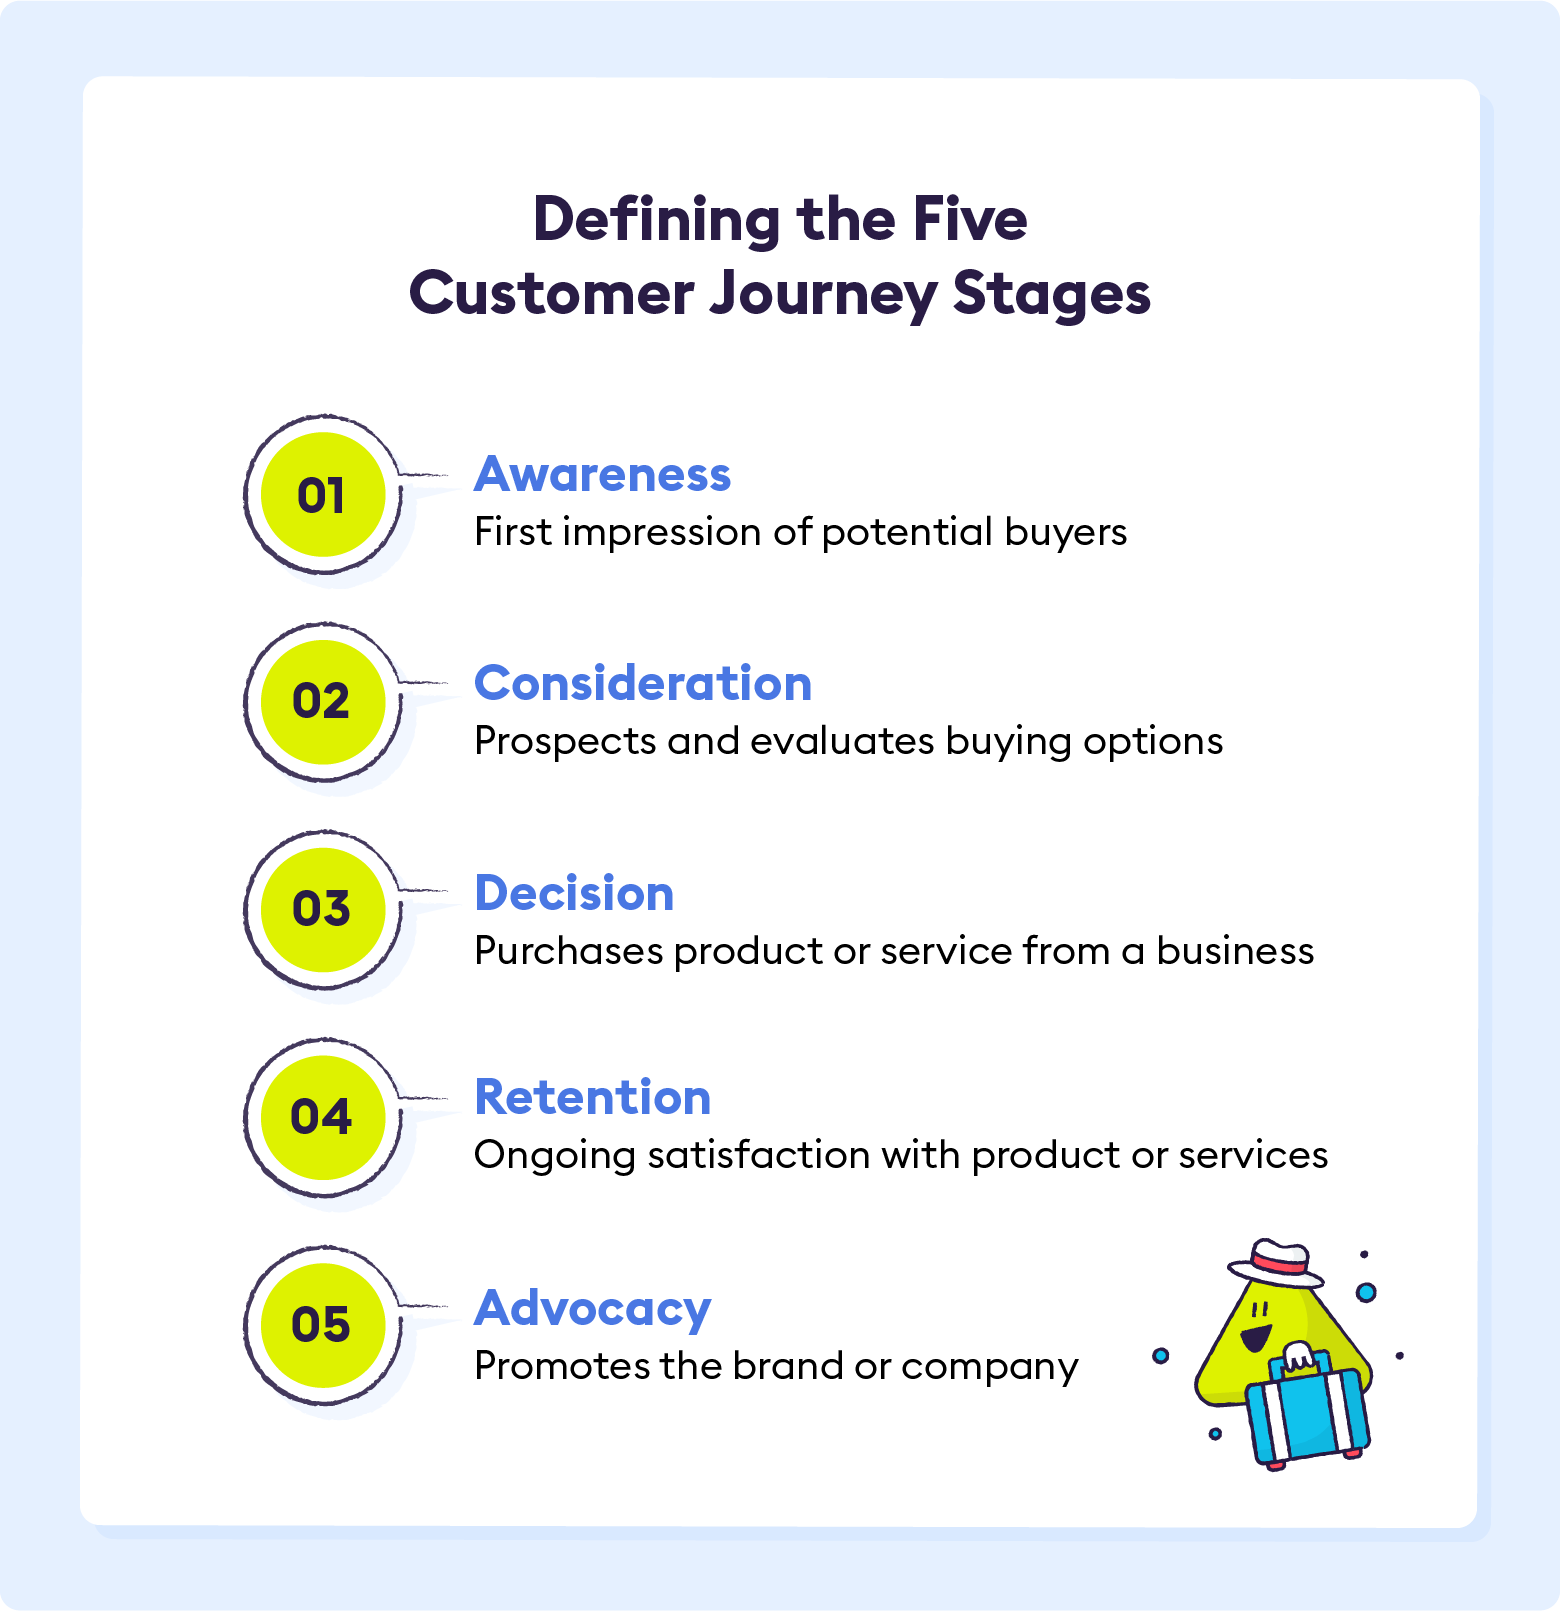 Defining the Five Customer Journey Stages